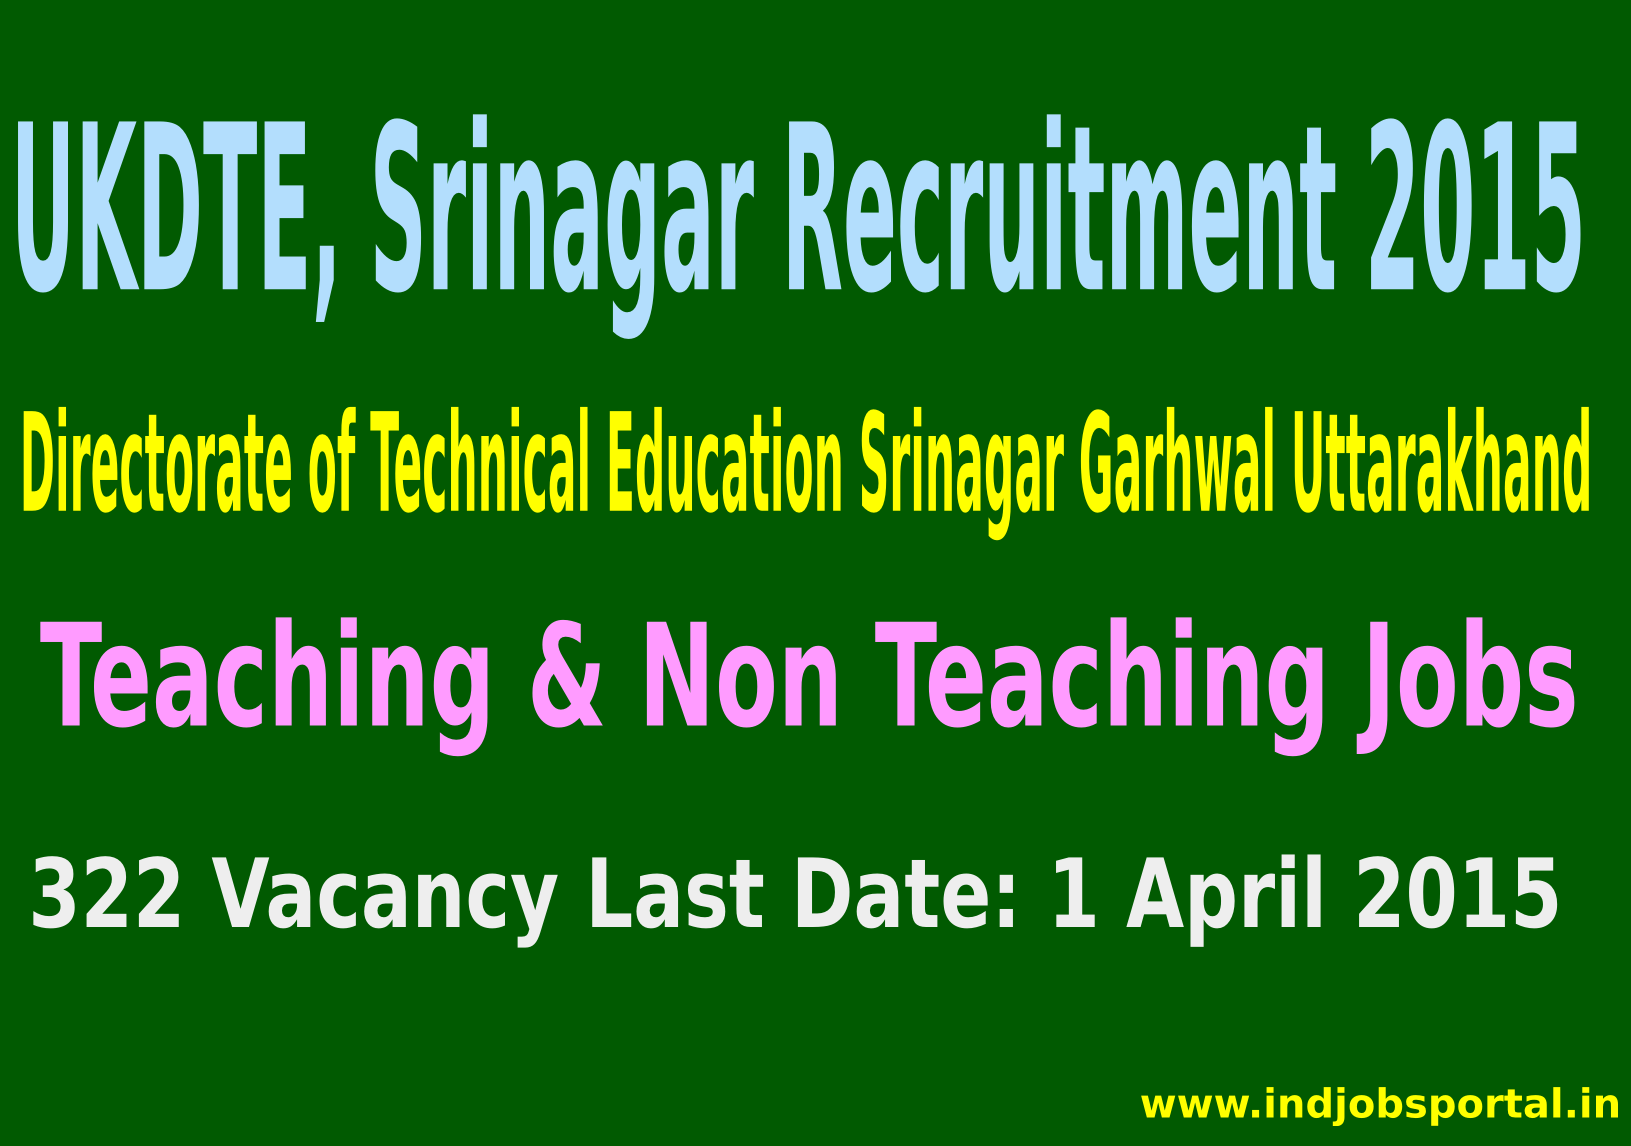 UKDTE, Srinagar Recruitment 2015 for 322 Teaching & Non Teaching Jobs in New Polytechnics in Uttarakhand